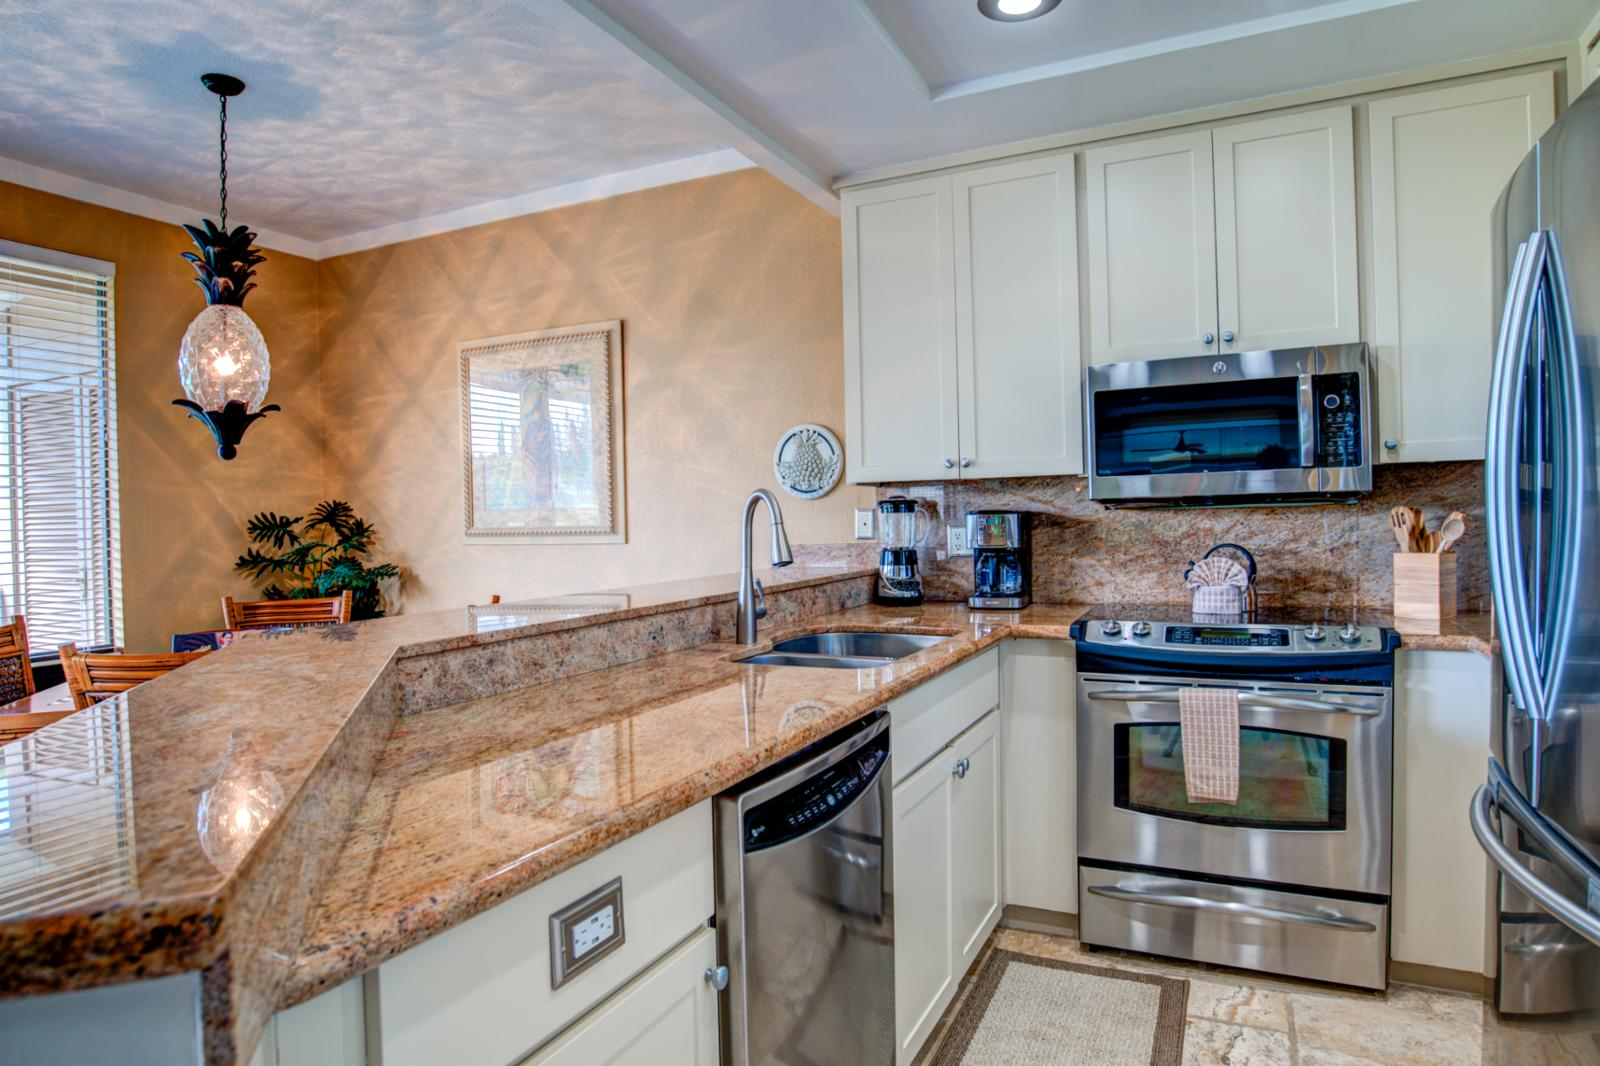 Newly upgraded stainless appliances throughout